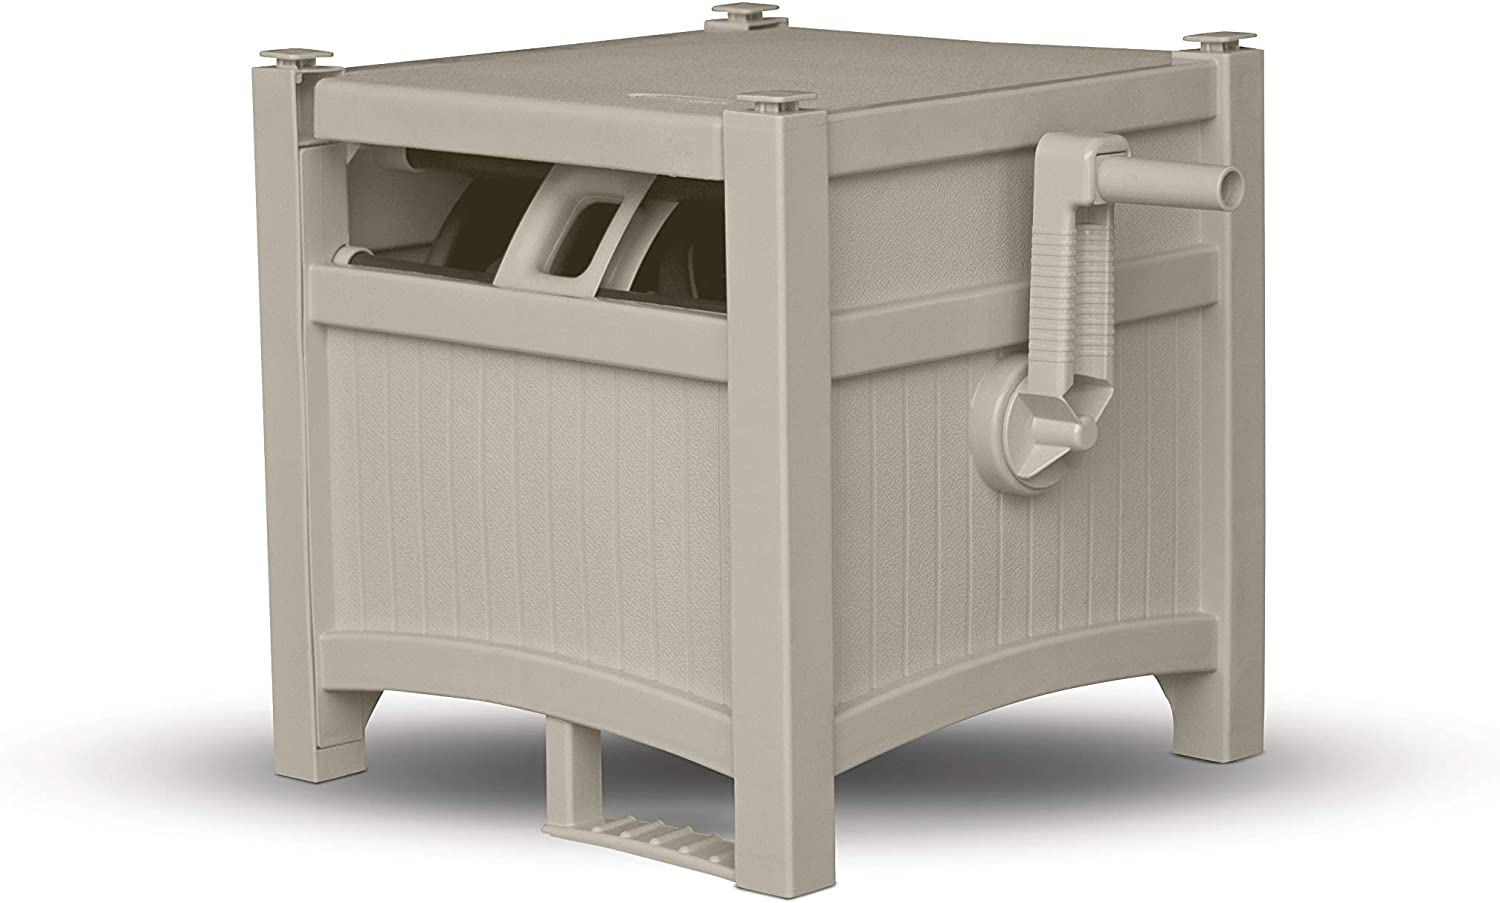 Durable Garden Hose Storage Reel with Crank Handle Suncast Resin Outdoor Hose Hideaway with Lid 100 Hose Capacity Taupe